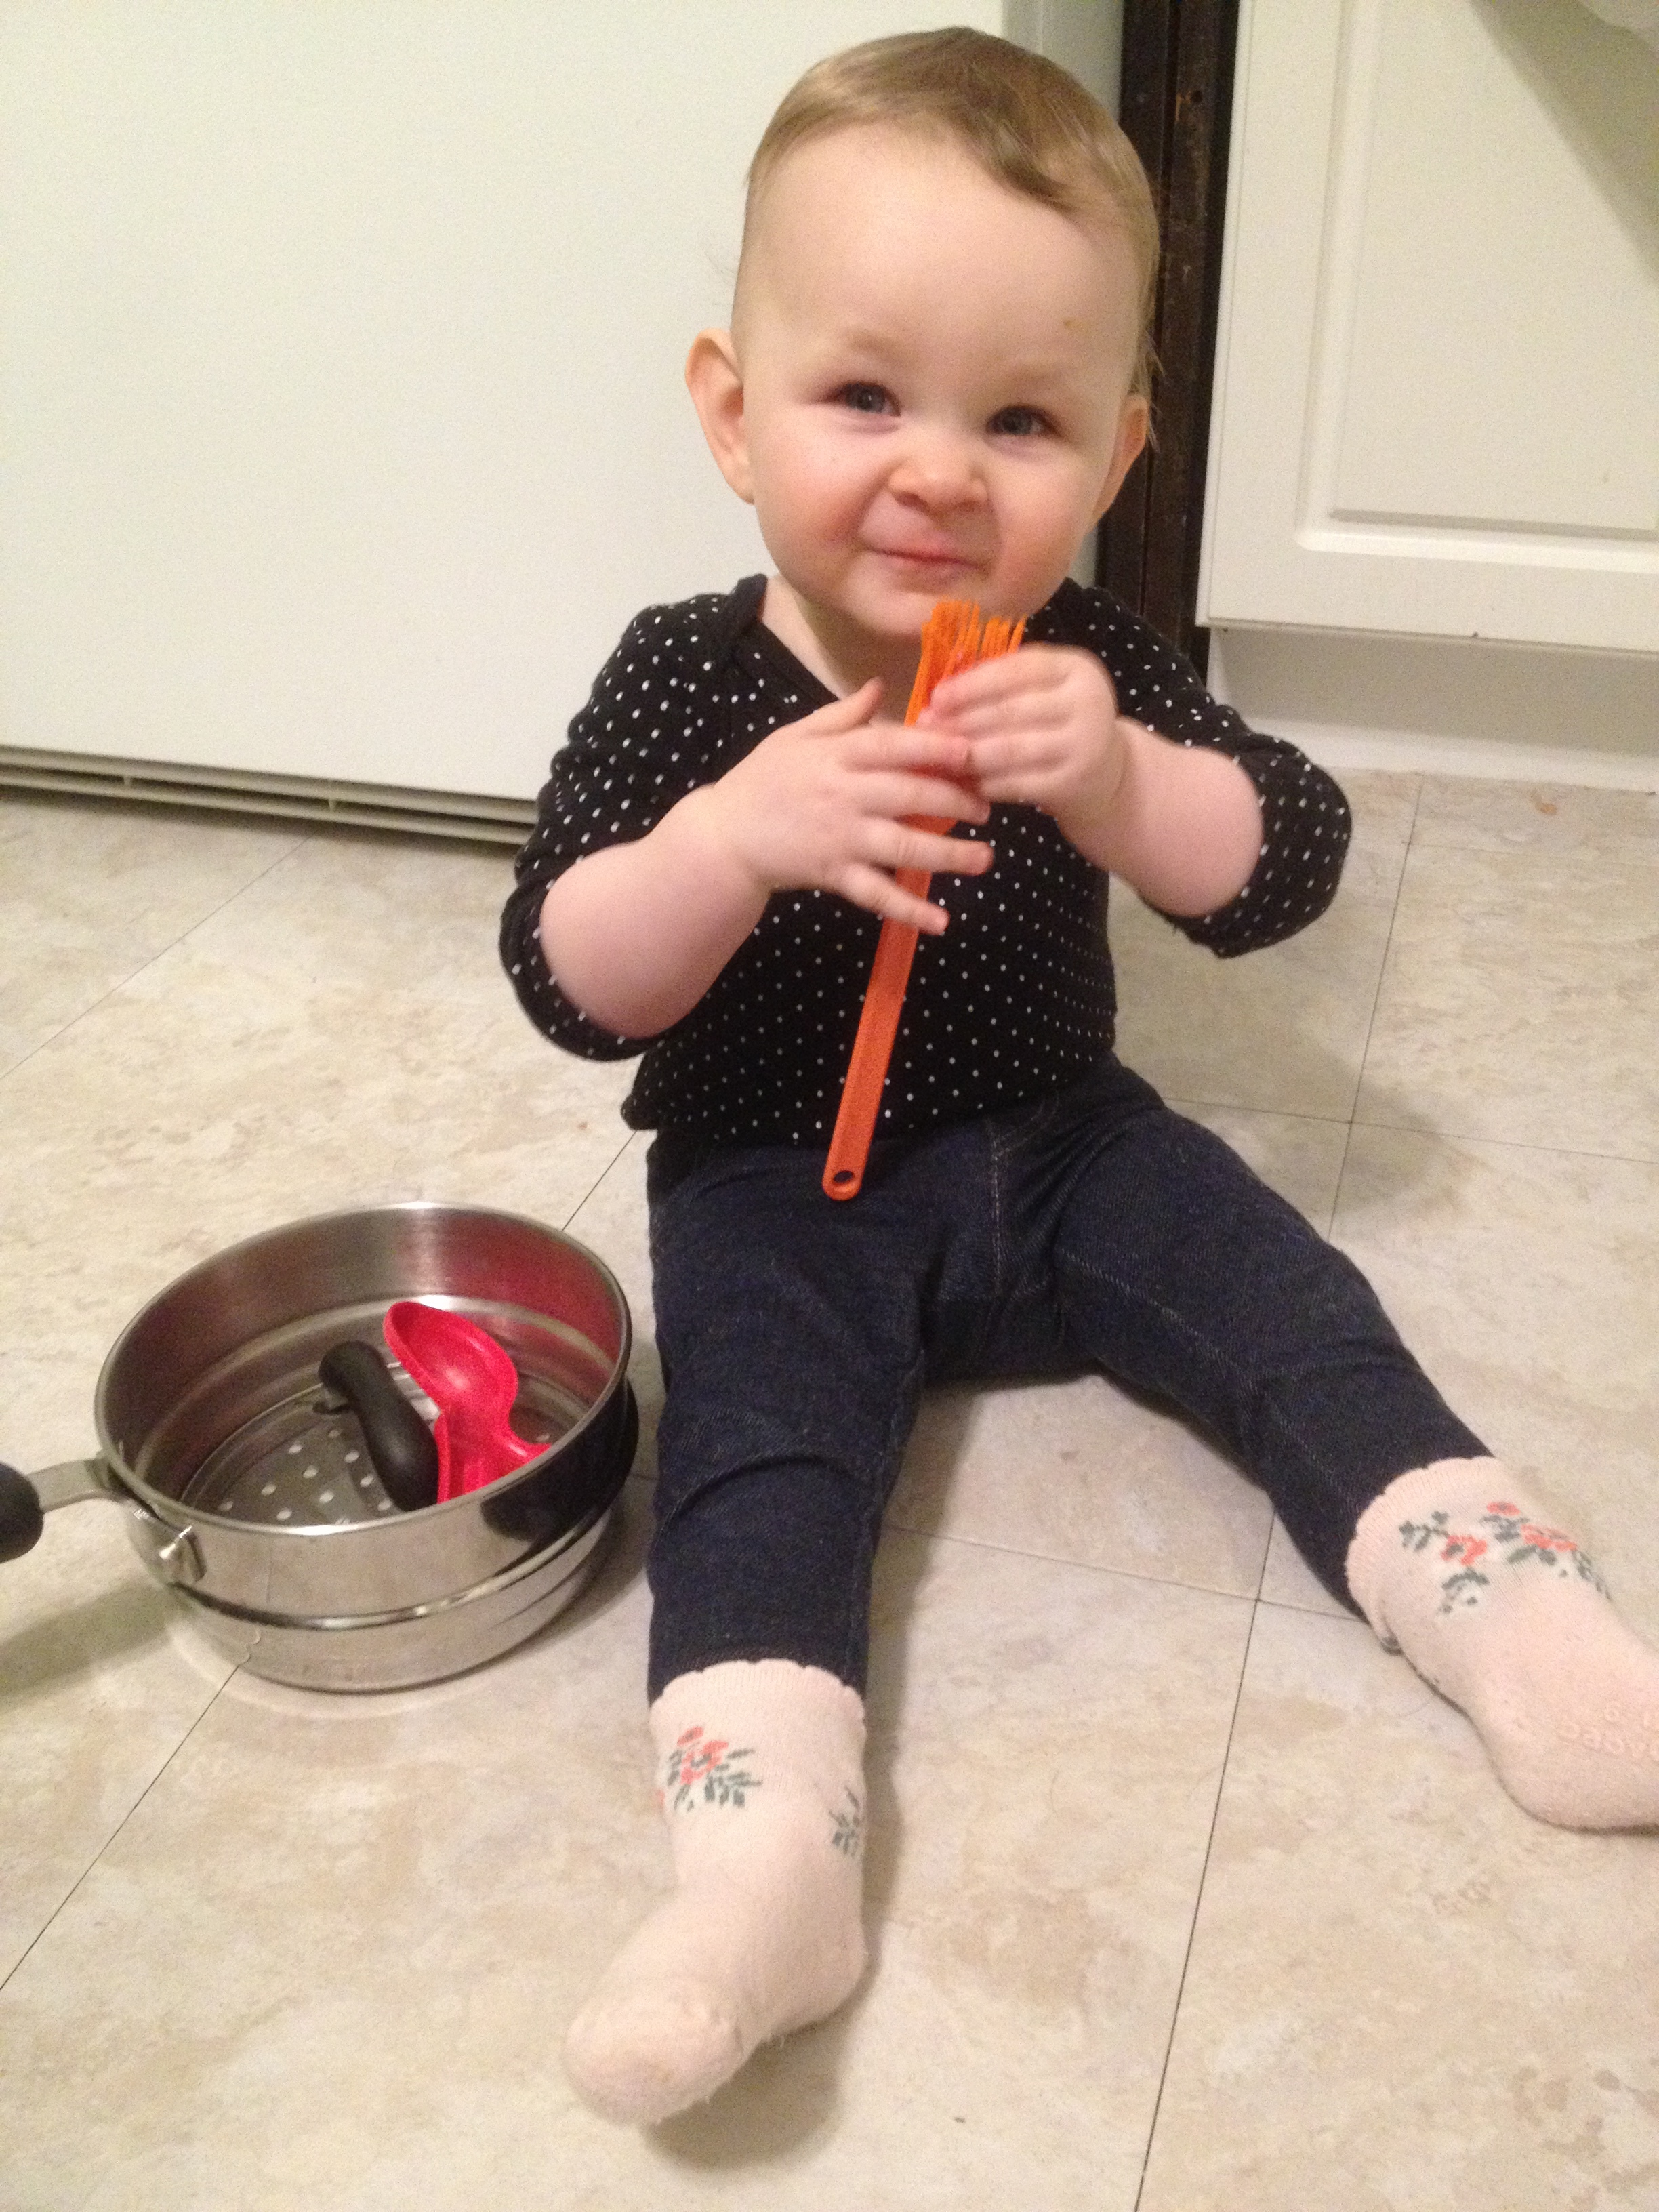 Playing with pots and random kitchen items while I do some dishes. Soon after this she learned to crawl and was barred from our kitchen so she wouldn't fall down the stairs. In the new house the basement stairs have a door - so excited for that!